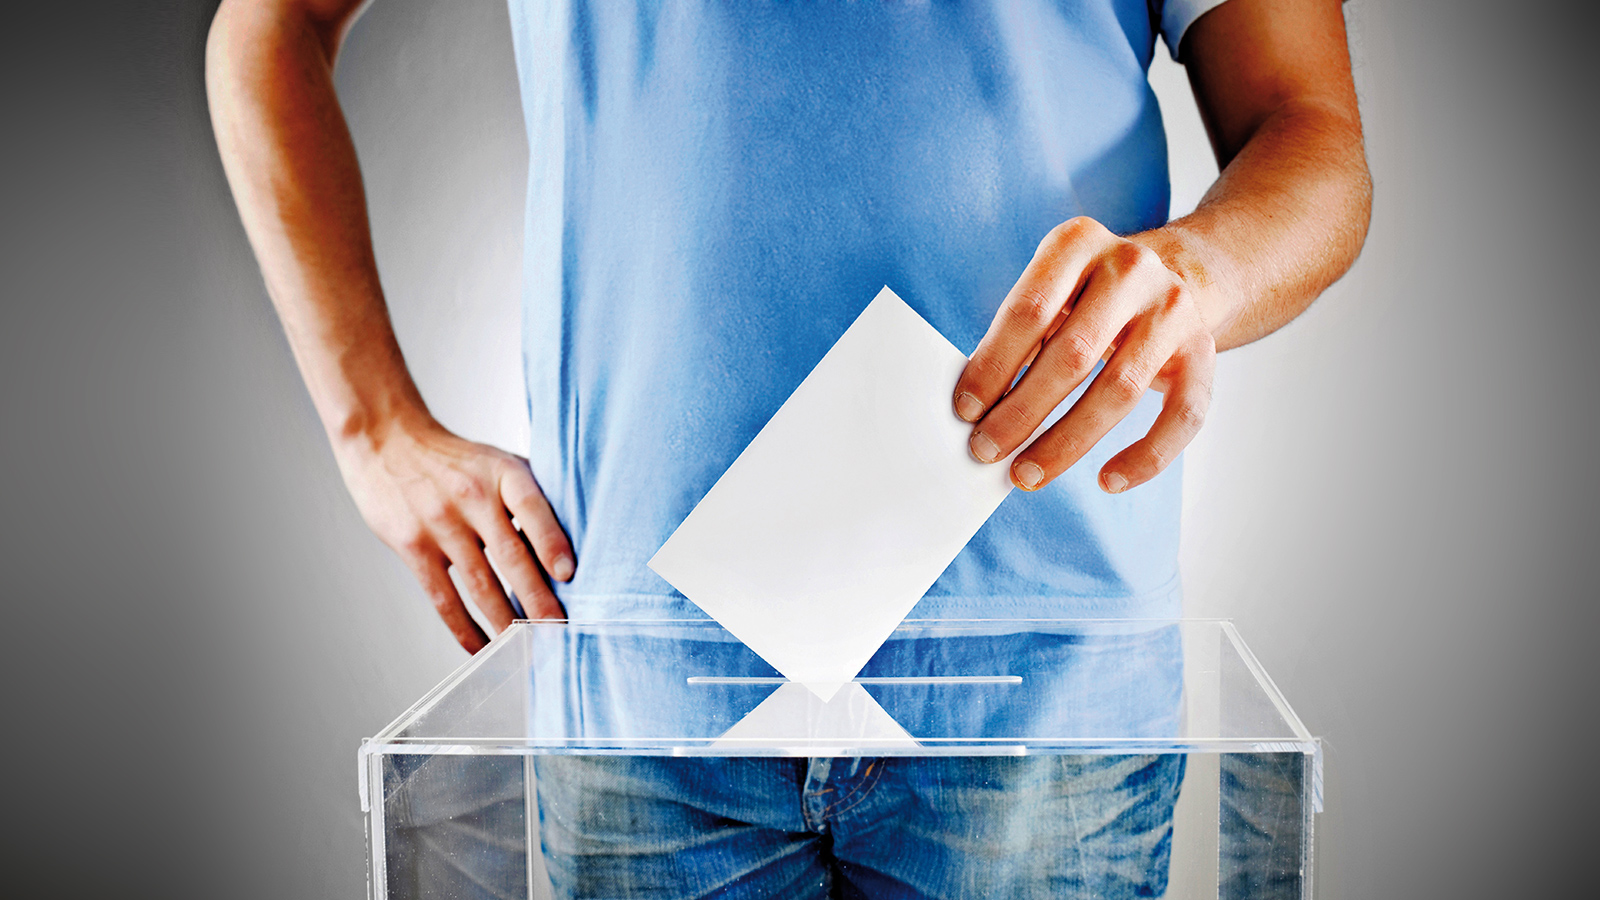 Homme-Urne-Vote-Elections